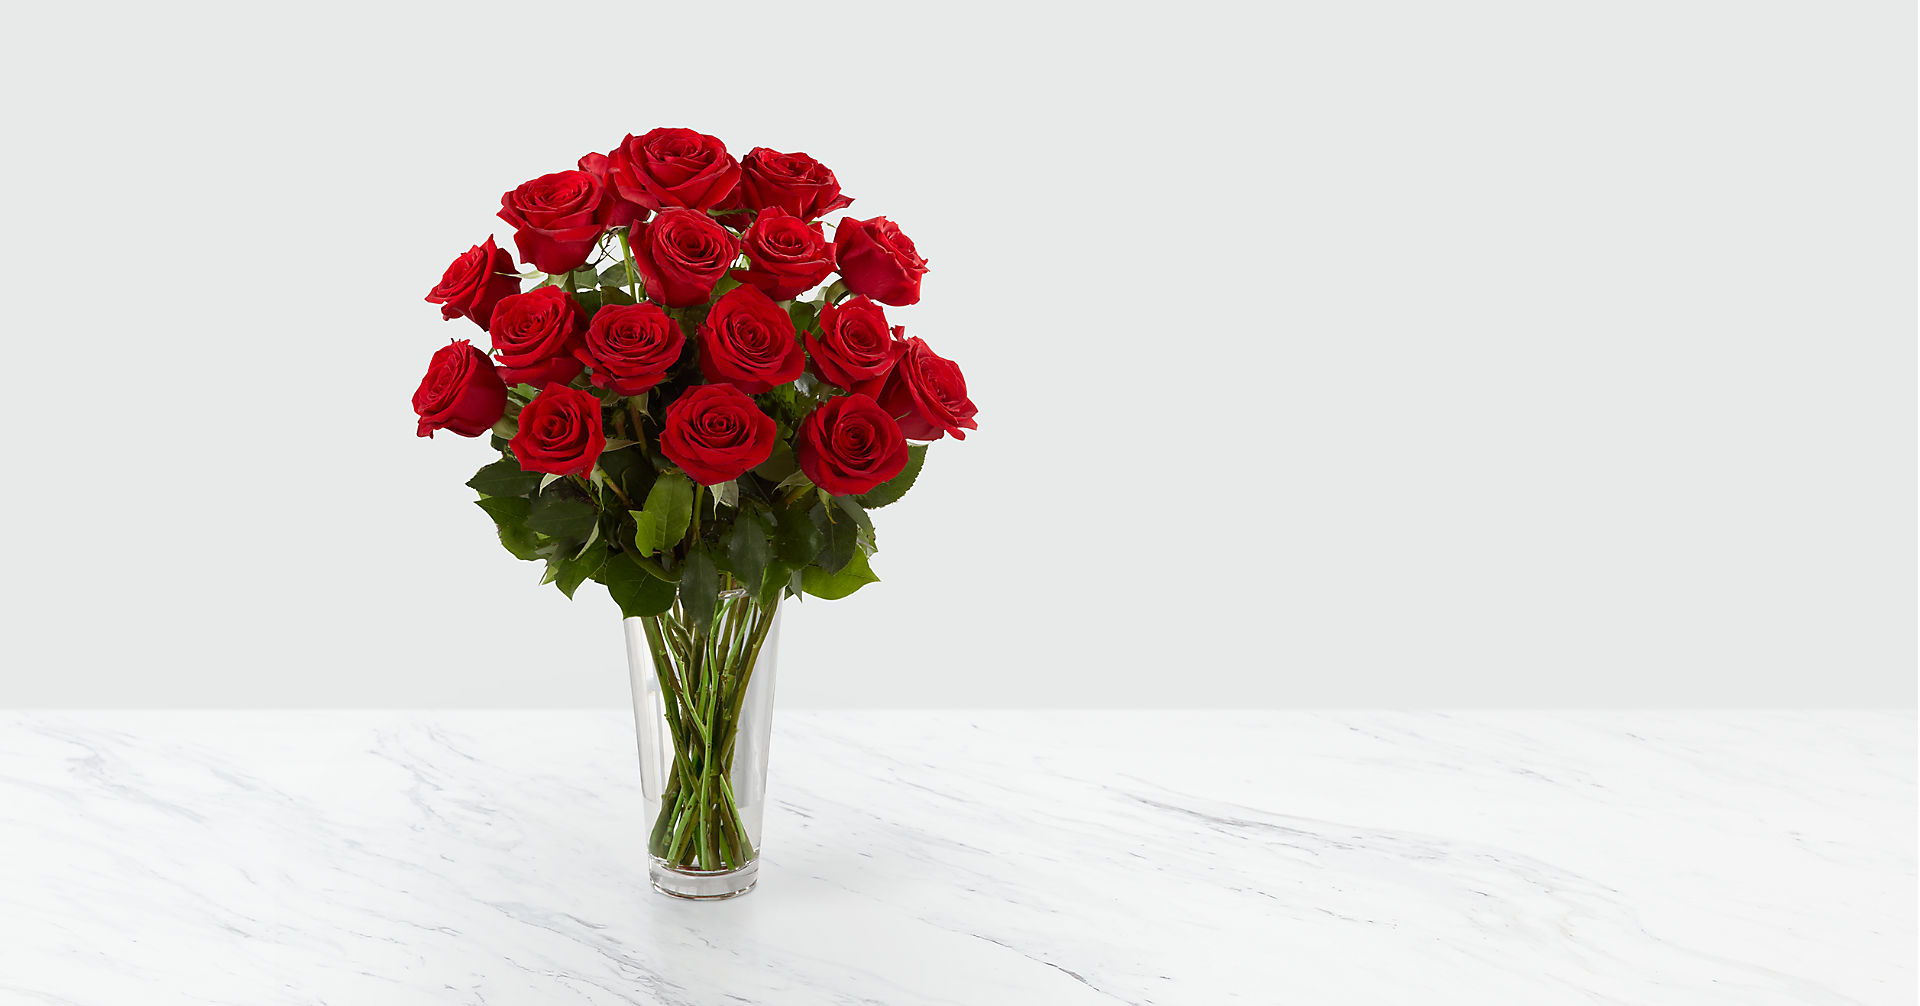 The Long Stem Red Rose Bouquet - Image 1 Of 2